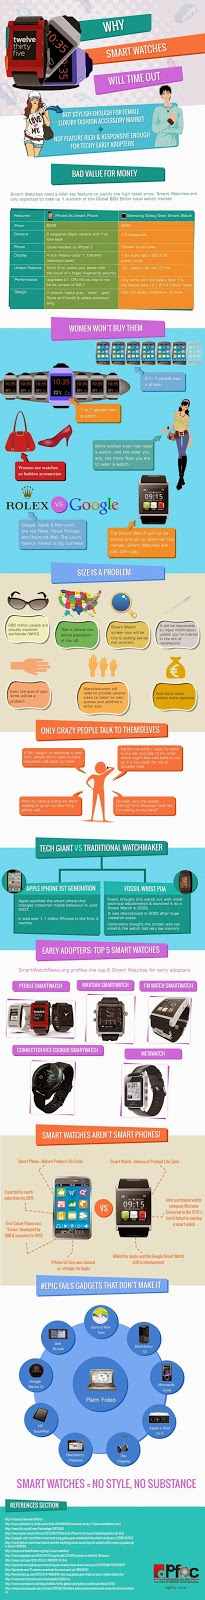 Smart Watches Infographic